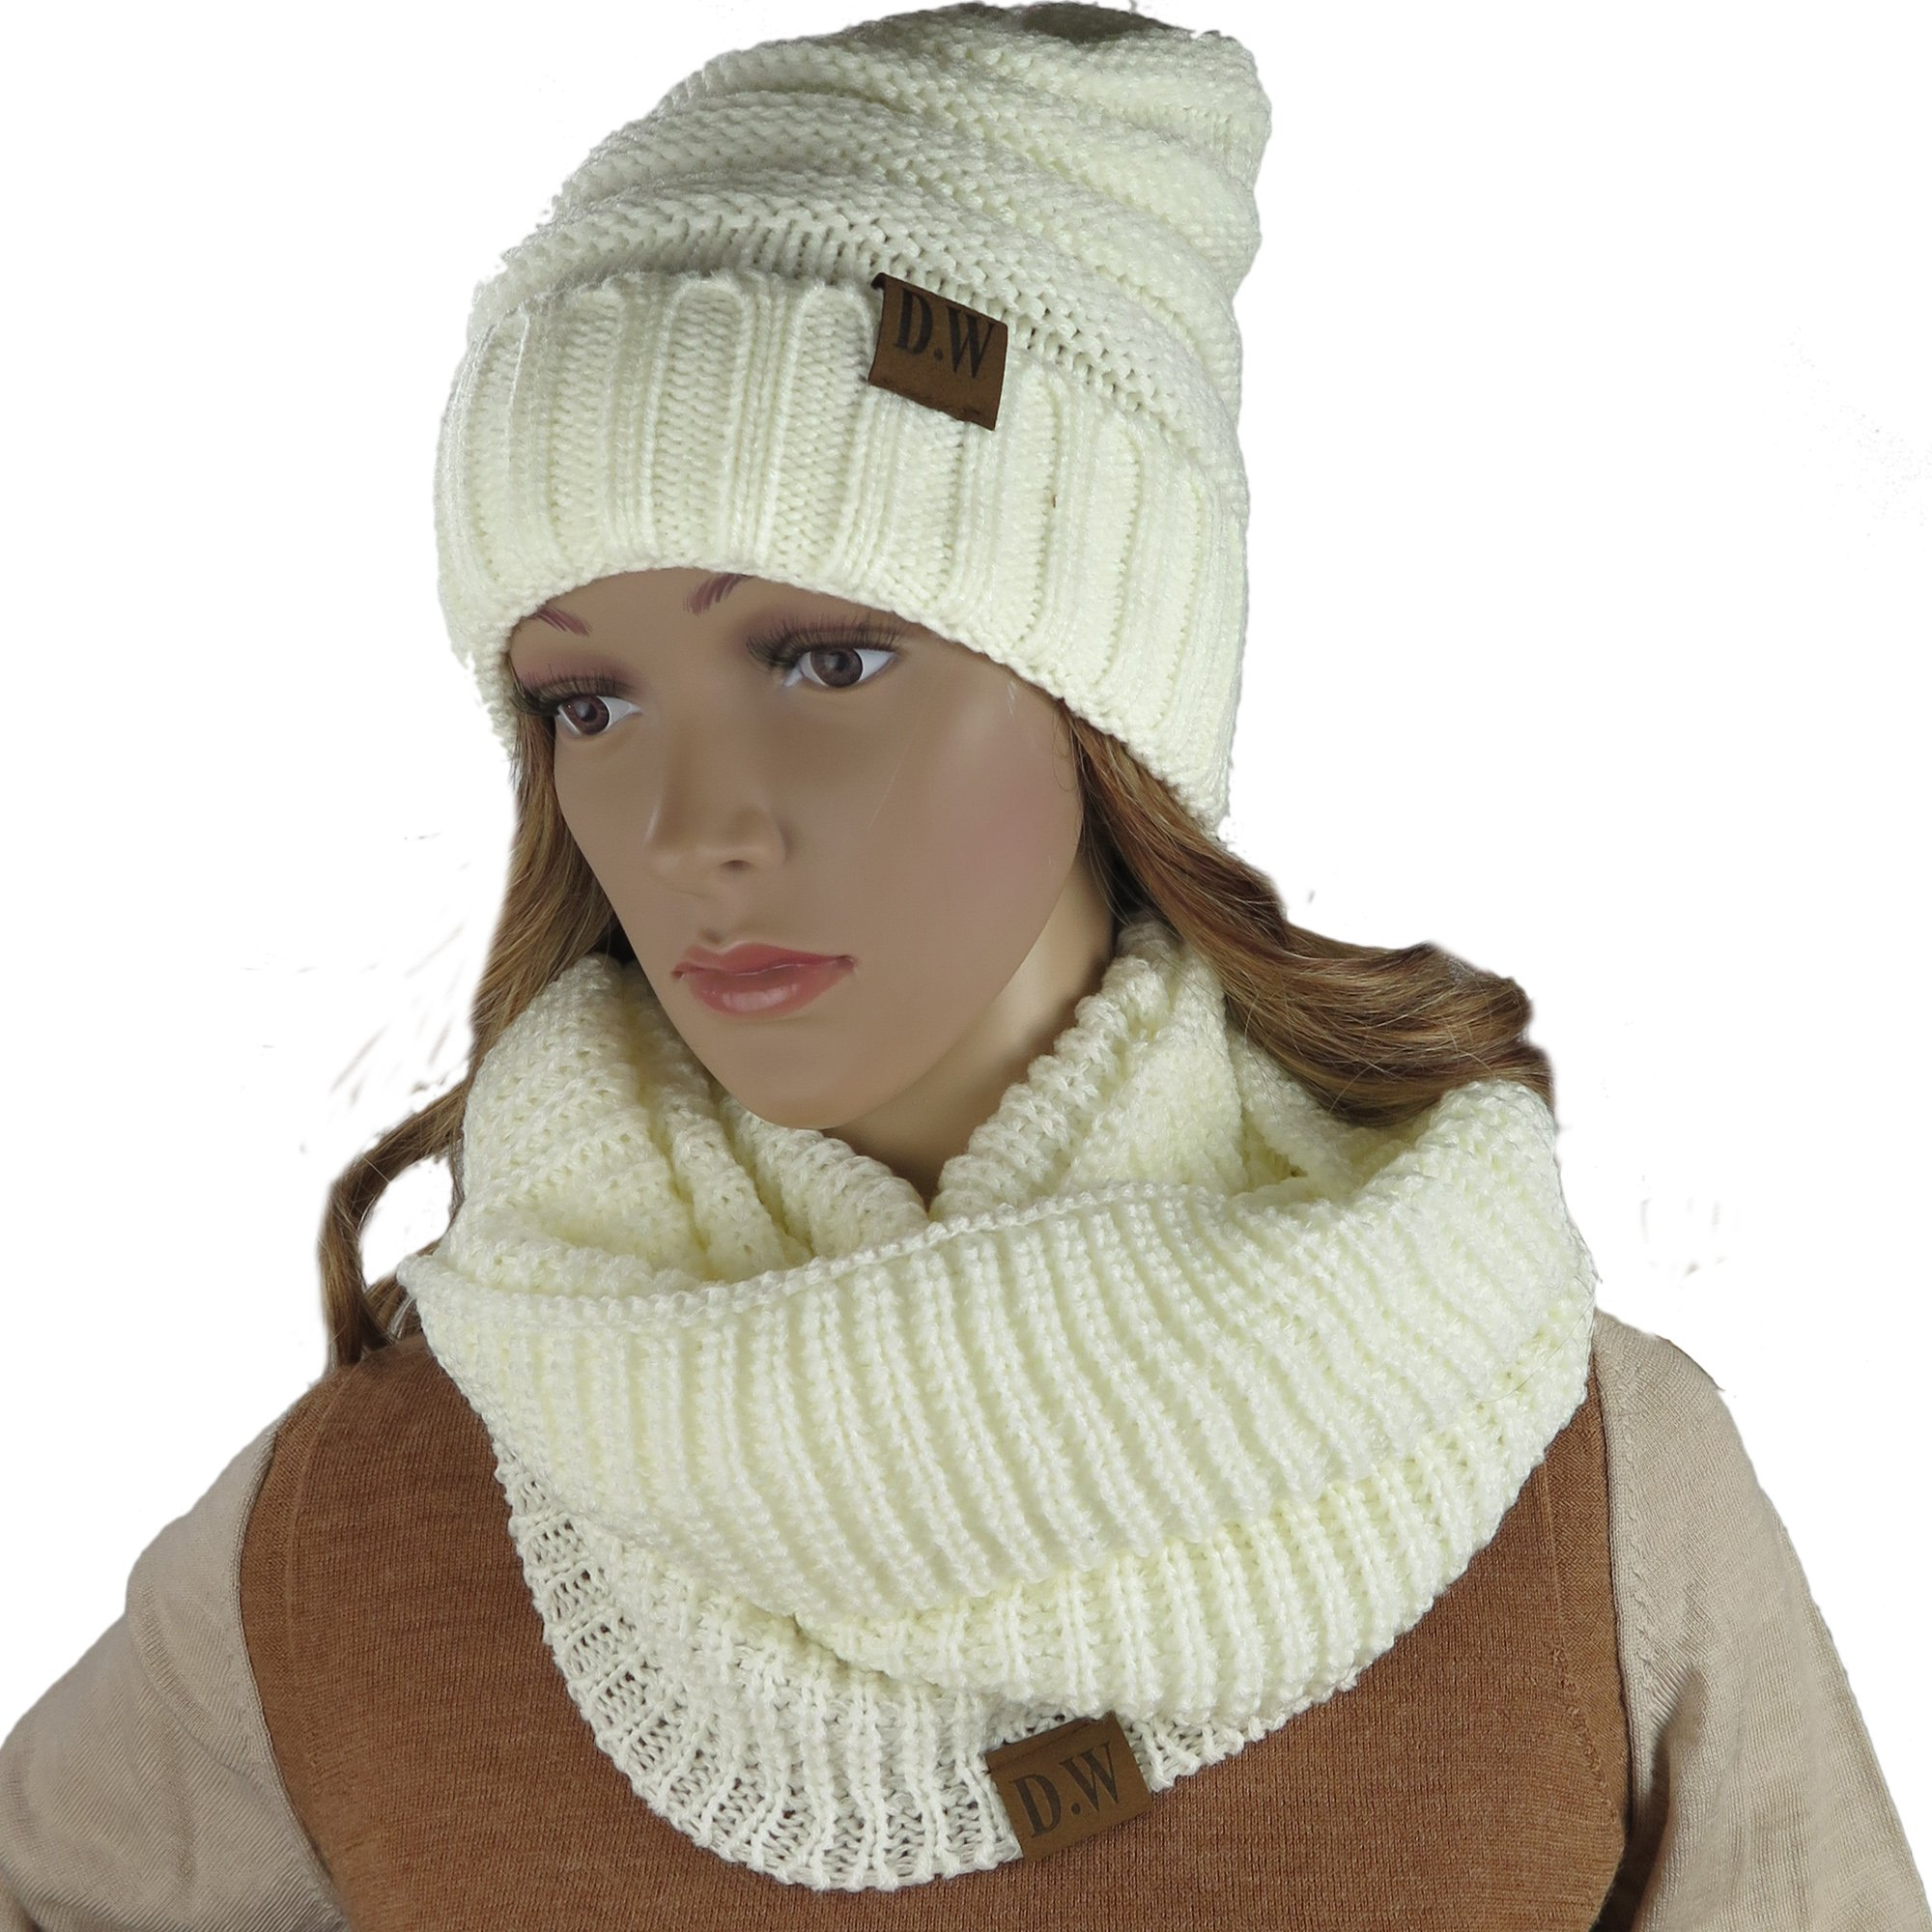 Knit Infinity Loop Scarf And Beanie Hat Set, Warm For The Winter Cream By Debra Weitzner